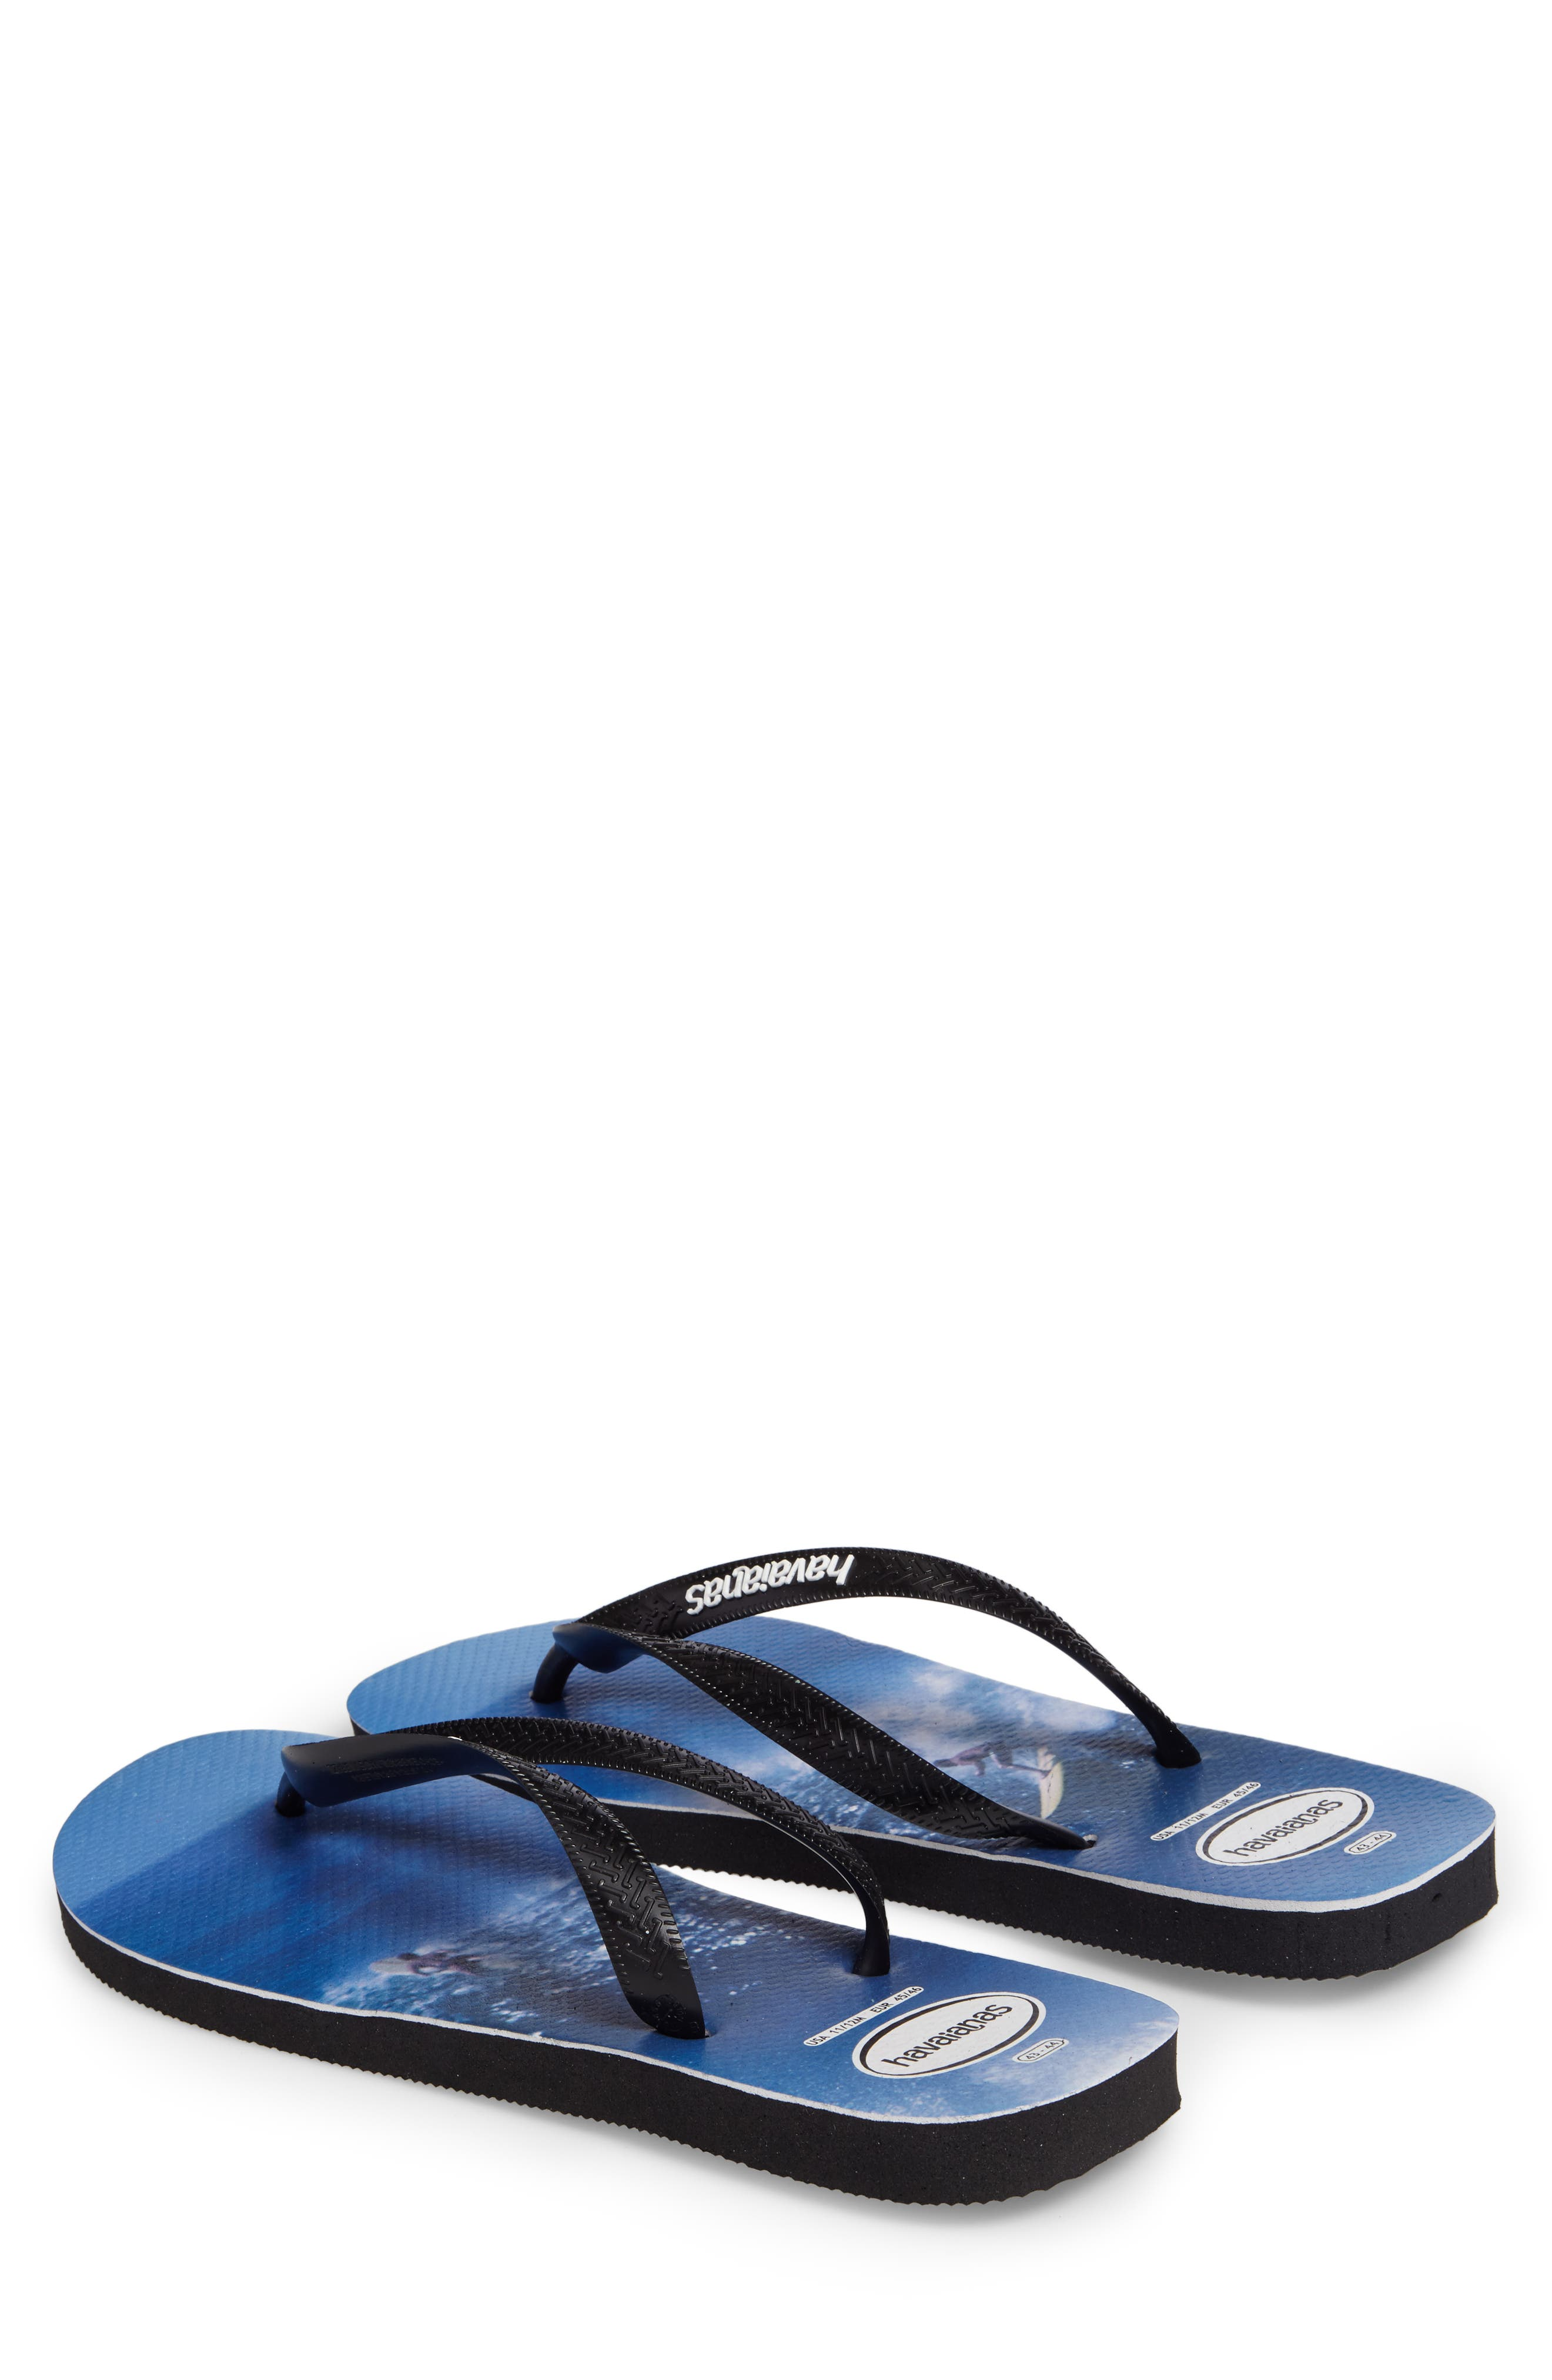 Alternate Image 2  - Havaianas Top Photo Print Flip Flop (Men)